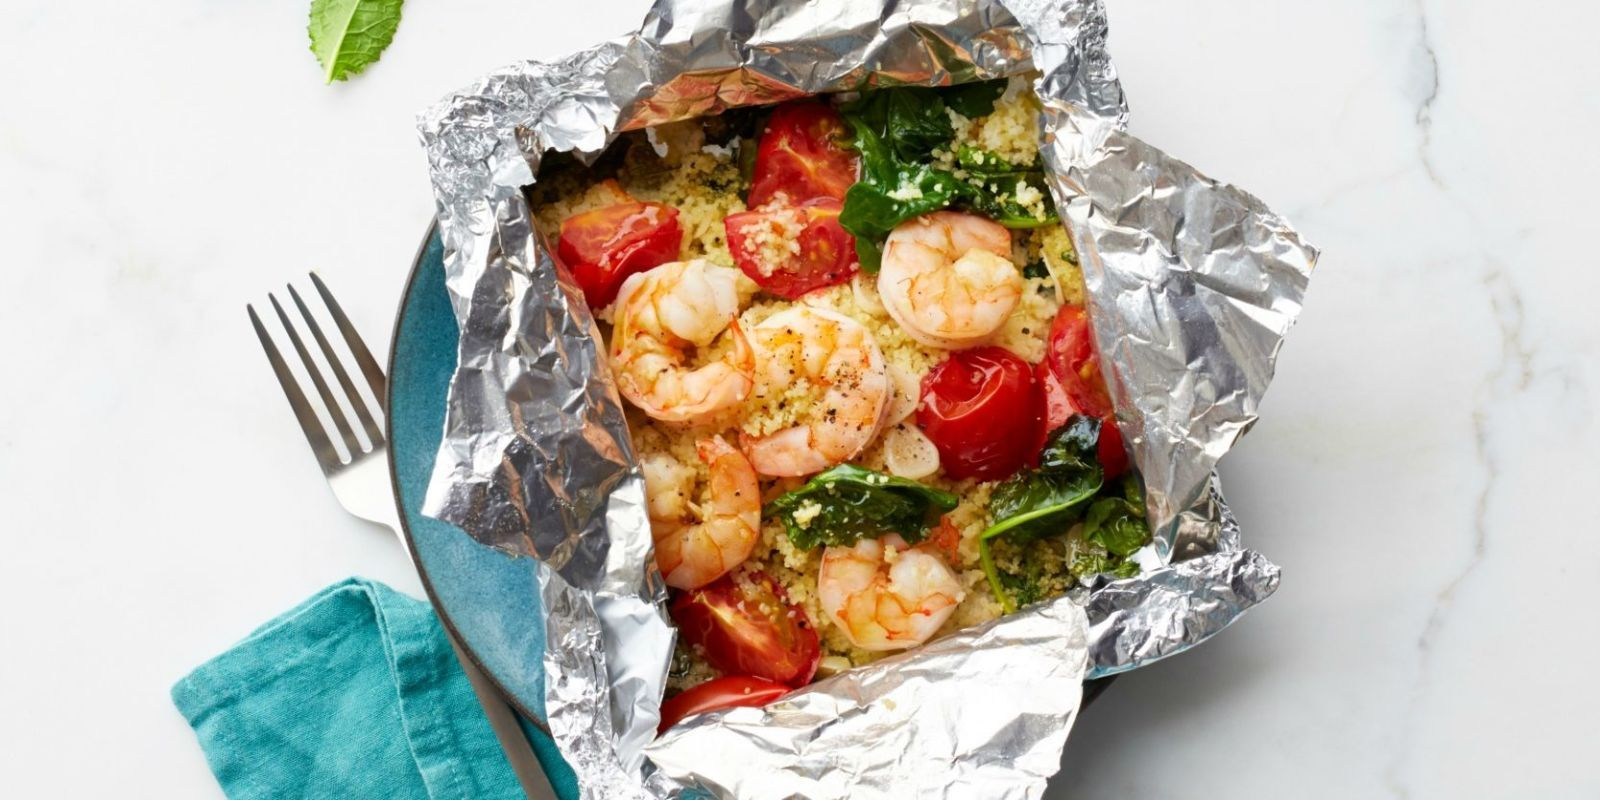 Shrimp and Garlicky Tomatoes with Kale Couscous